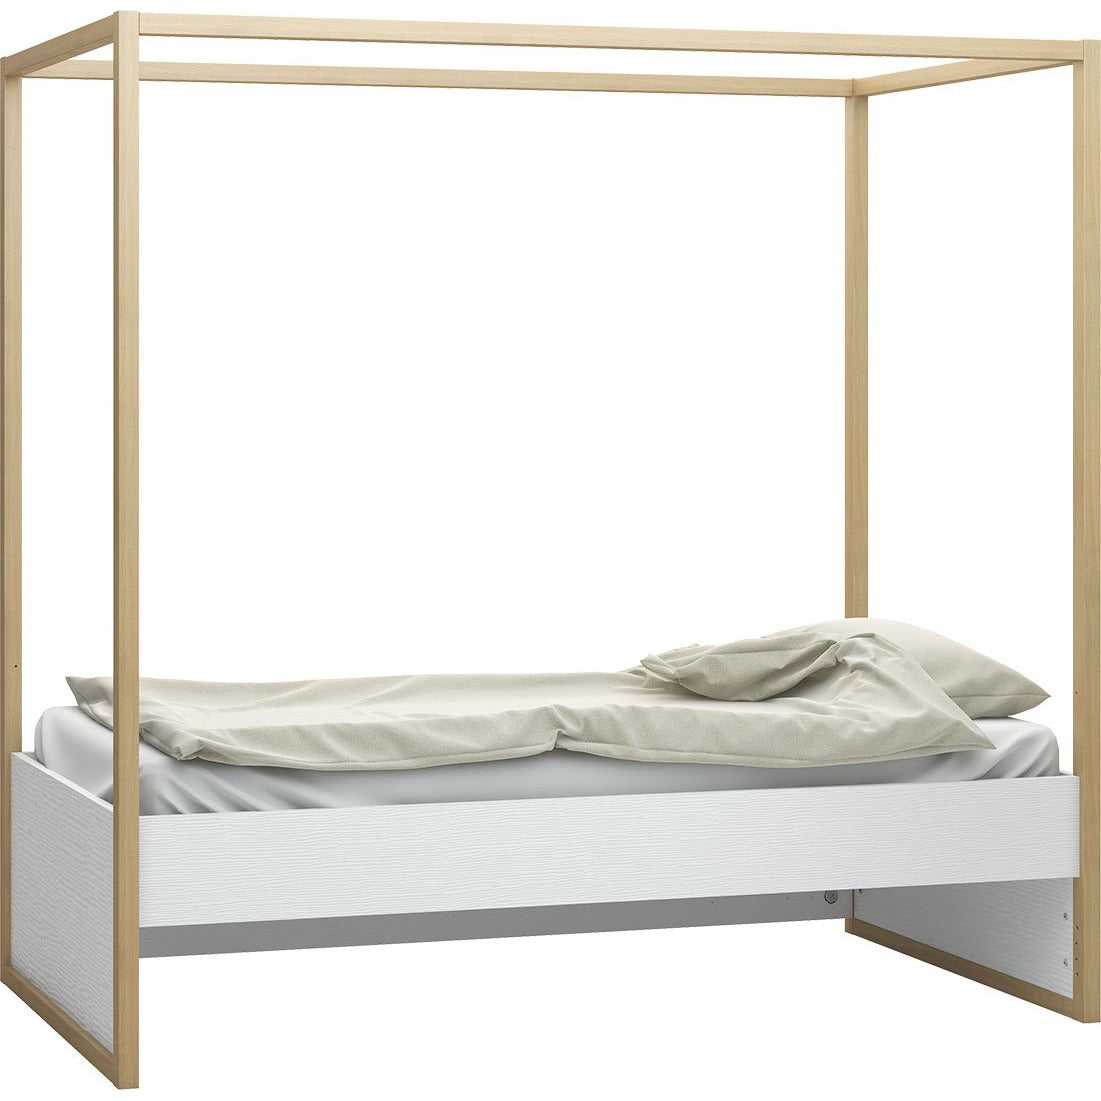 4 You - 4 Poster Single Bed in White & Oak